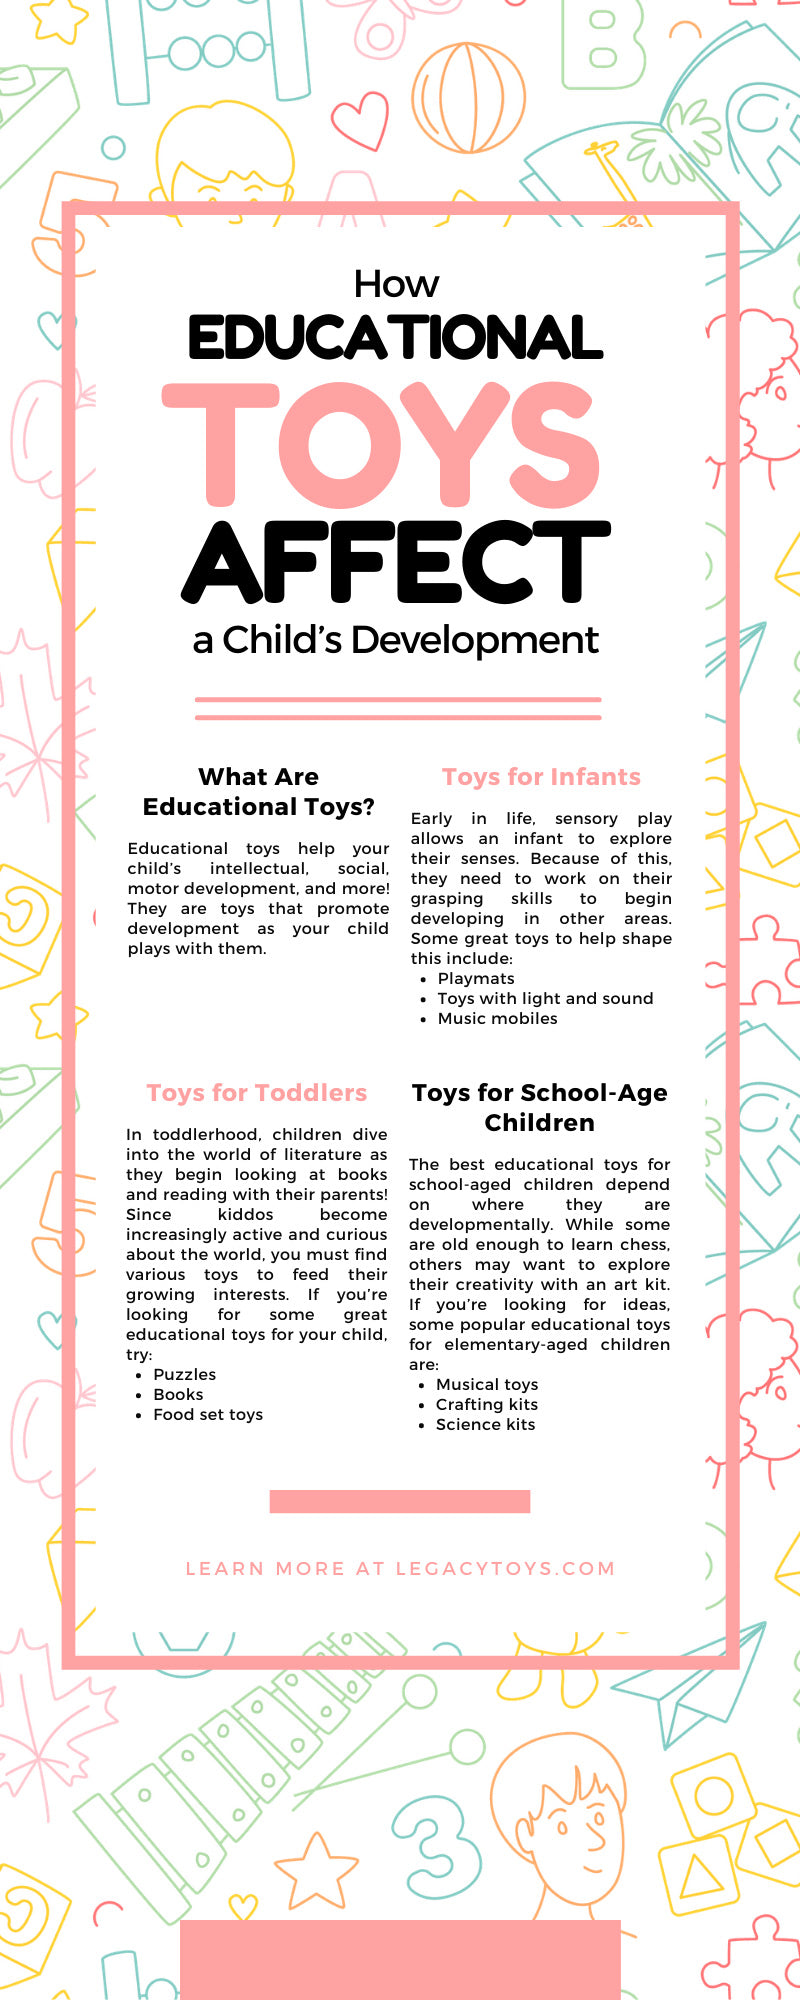 How Educational Toys Affect a Child's Development